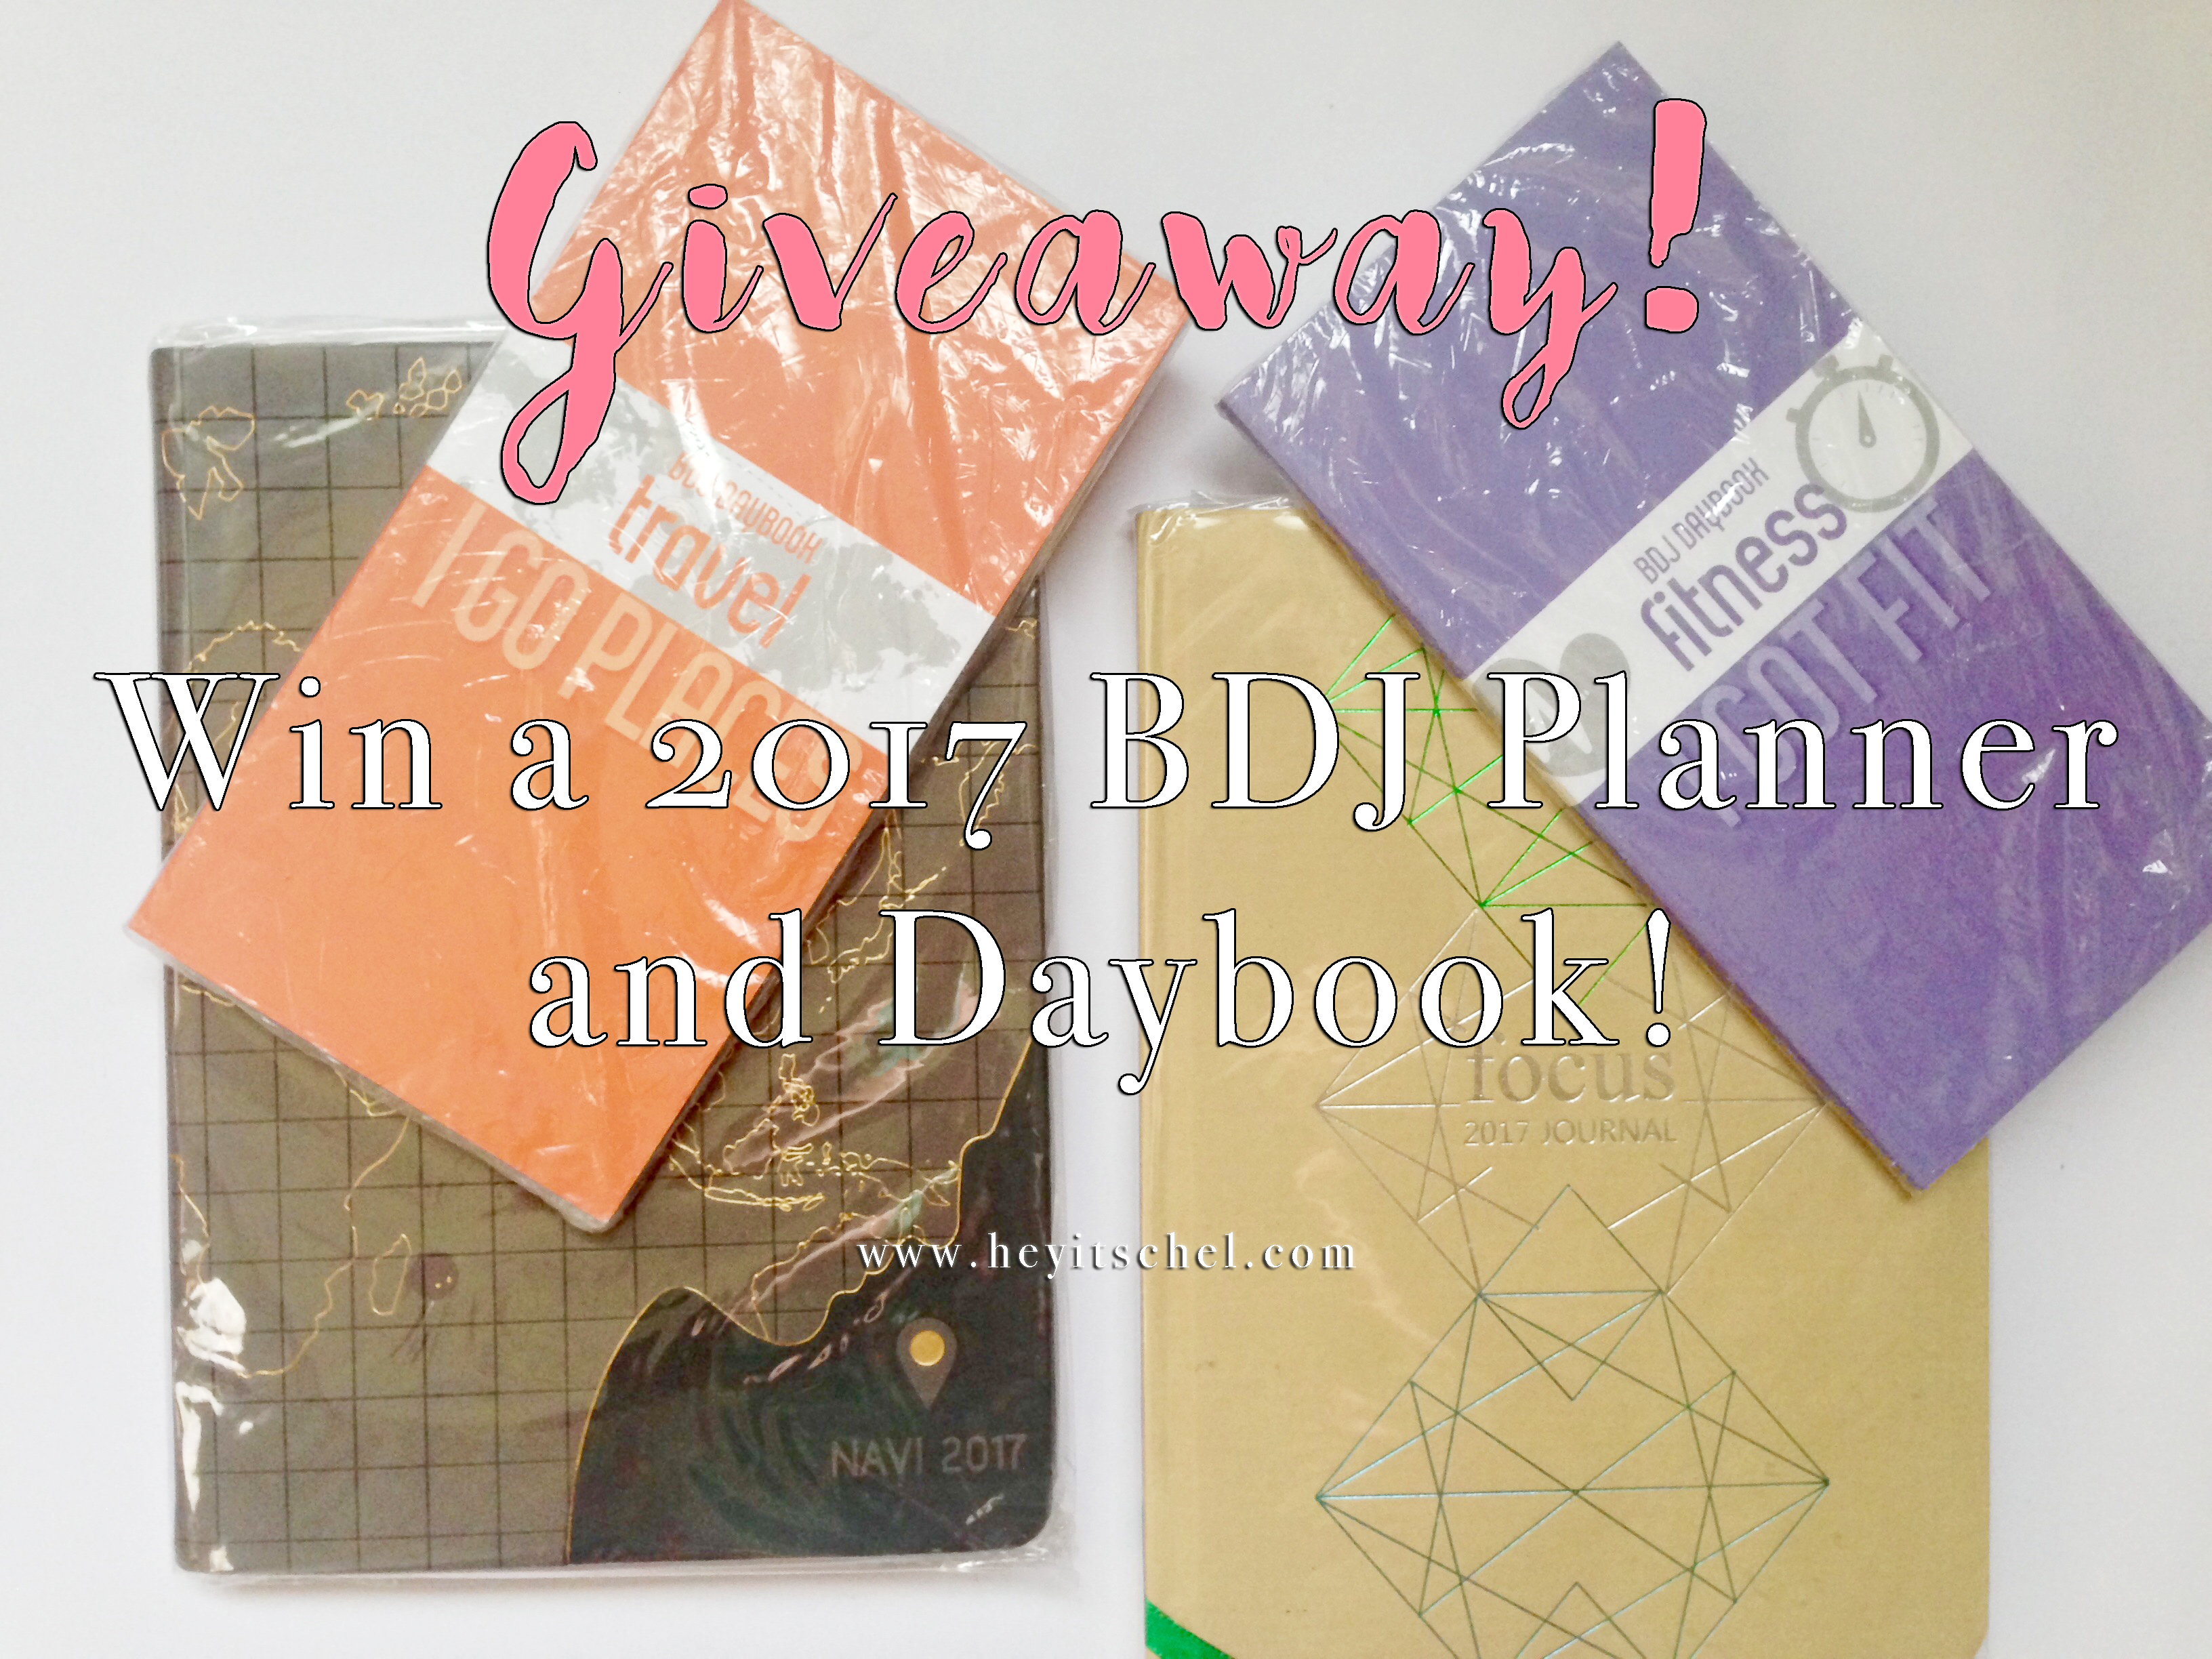 Giveaway: Win a 2017 BDJ Planner and Daybook! (Closed)